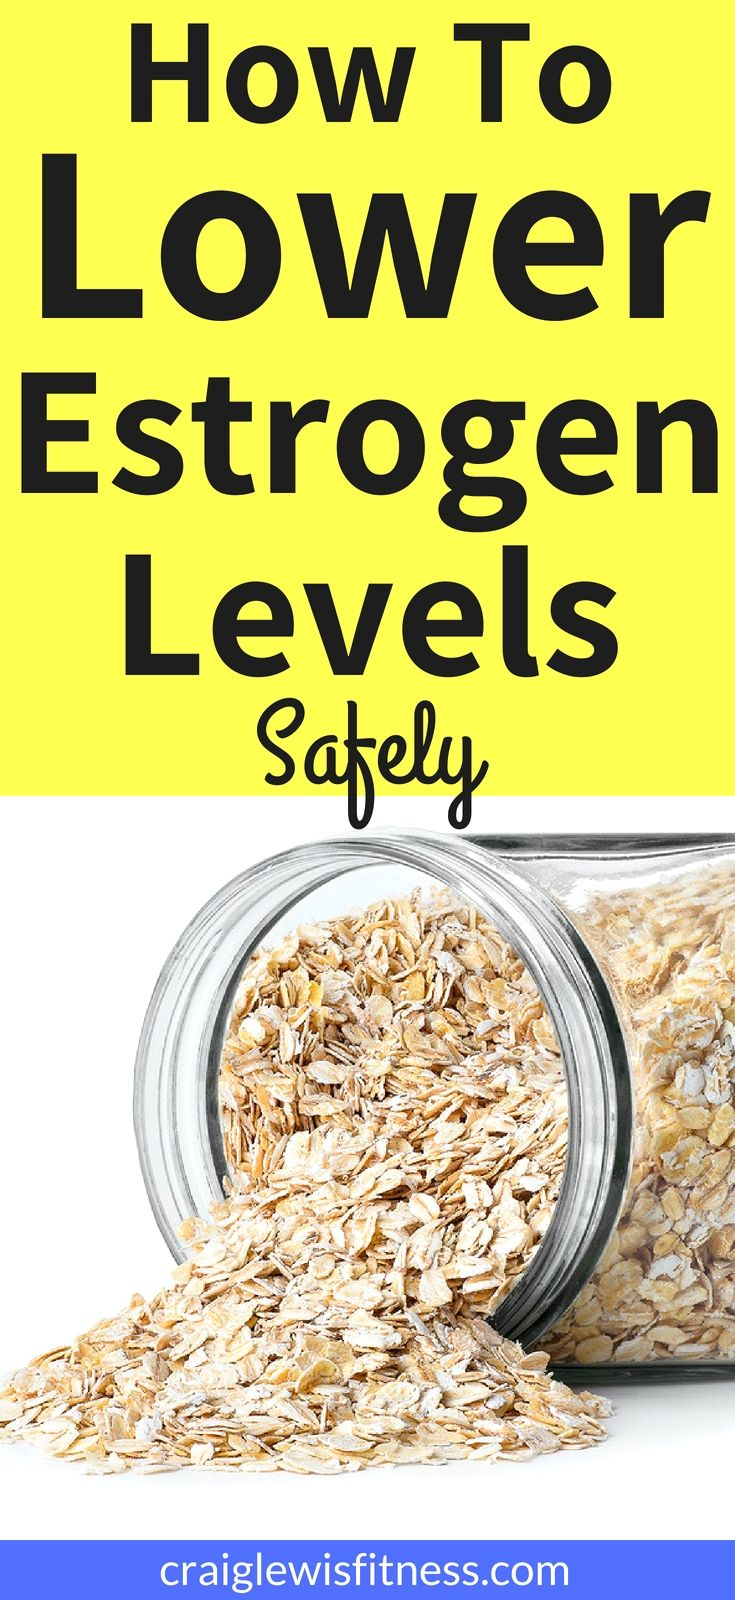 Pin by donniexstw6m0 on Health in 2020 Lower estrogen